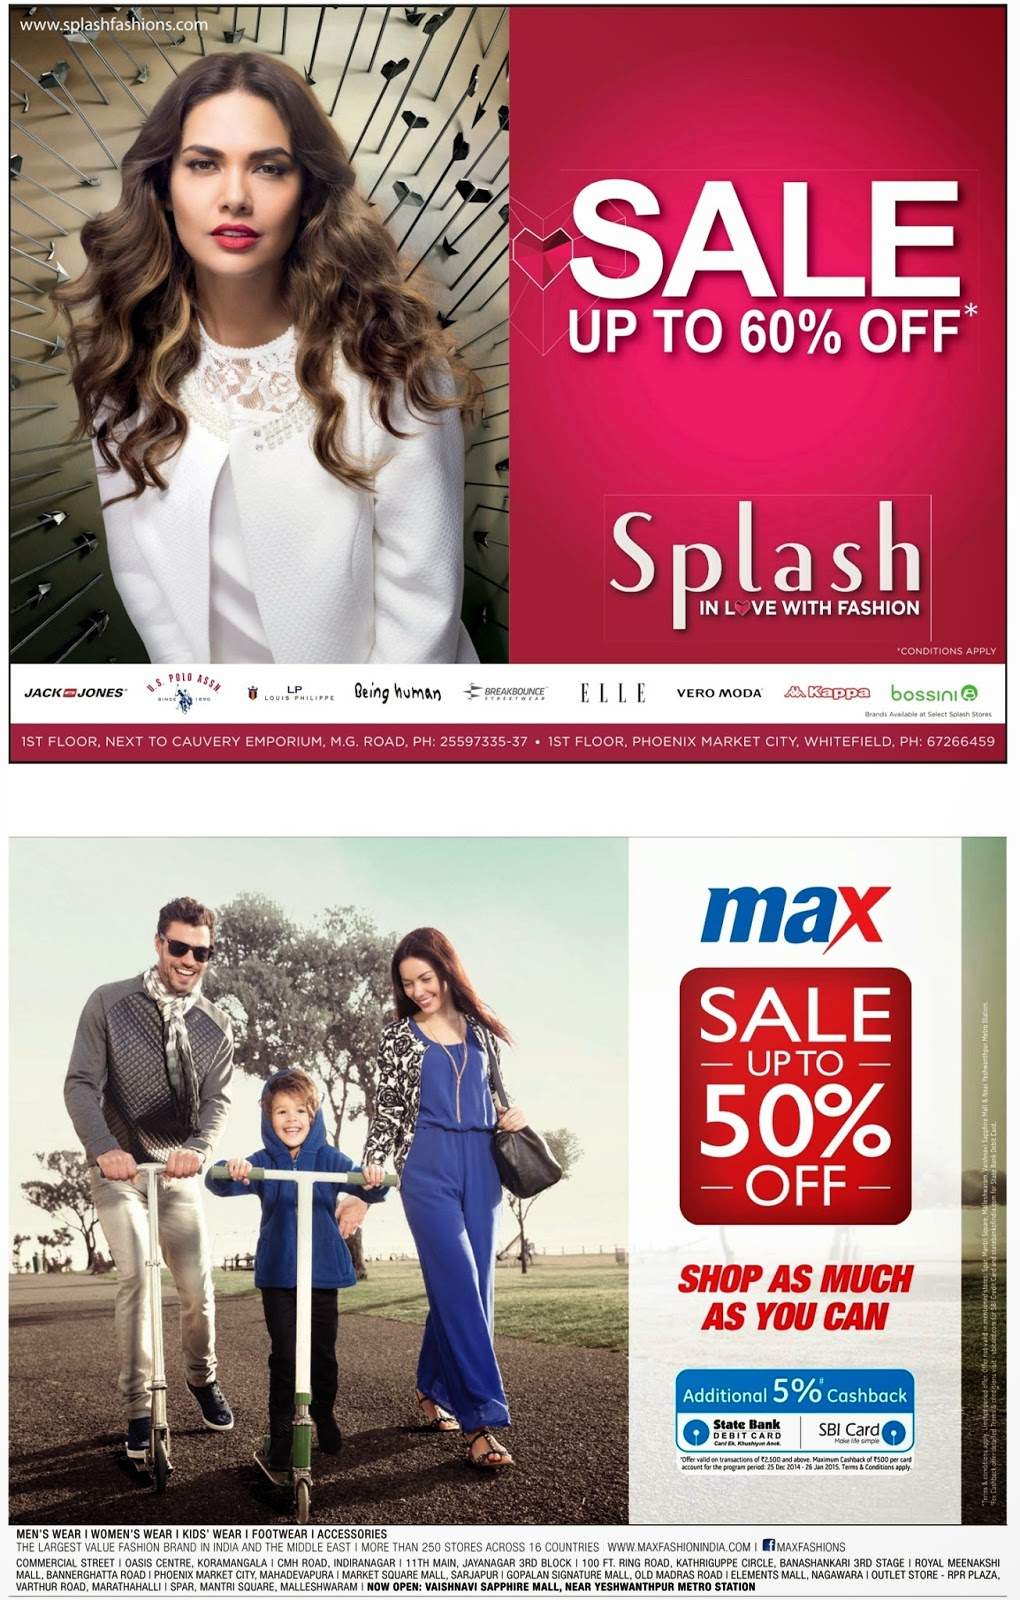 64b34c0ab25f All India Sales: Upto 50%* Sale of Max and Splash for limited period.